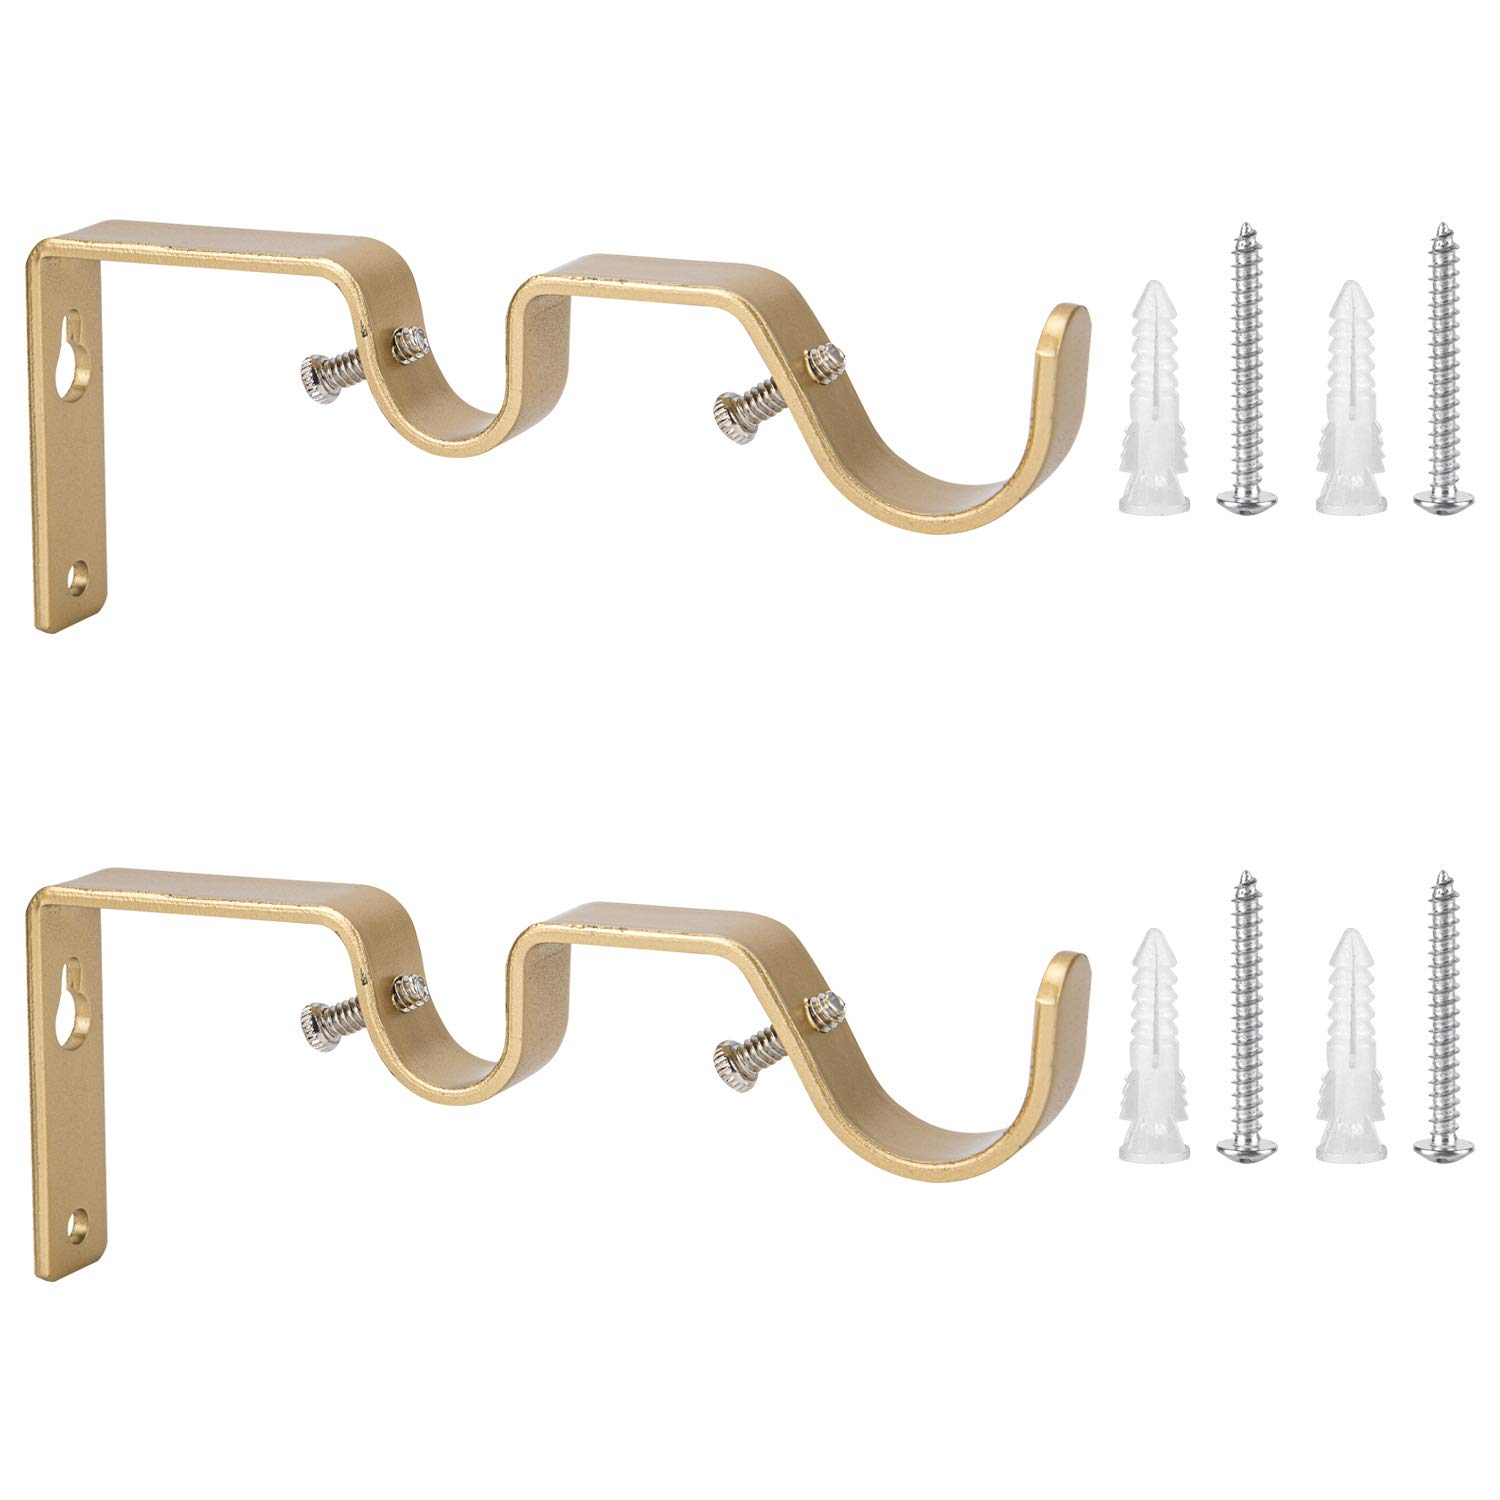 Ycolnaefllr Set of 2 Golden Double Rod Holders Double Curtain Rod Brackets Double Curtain Rod Hanging Brackets for 1 and 0.7 -Inch Rod